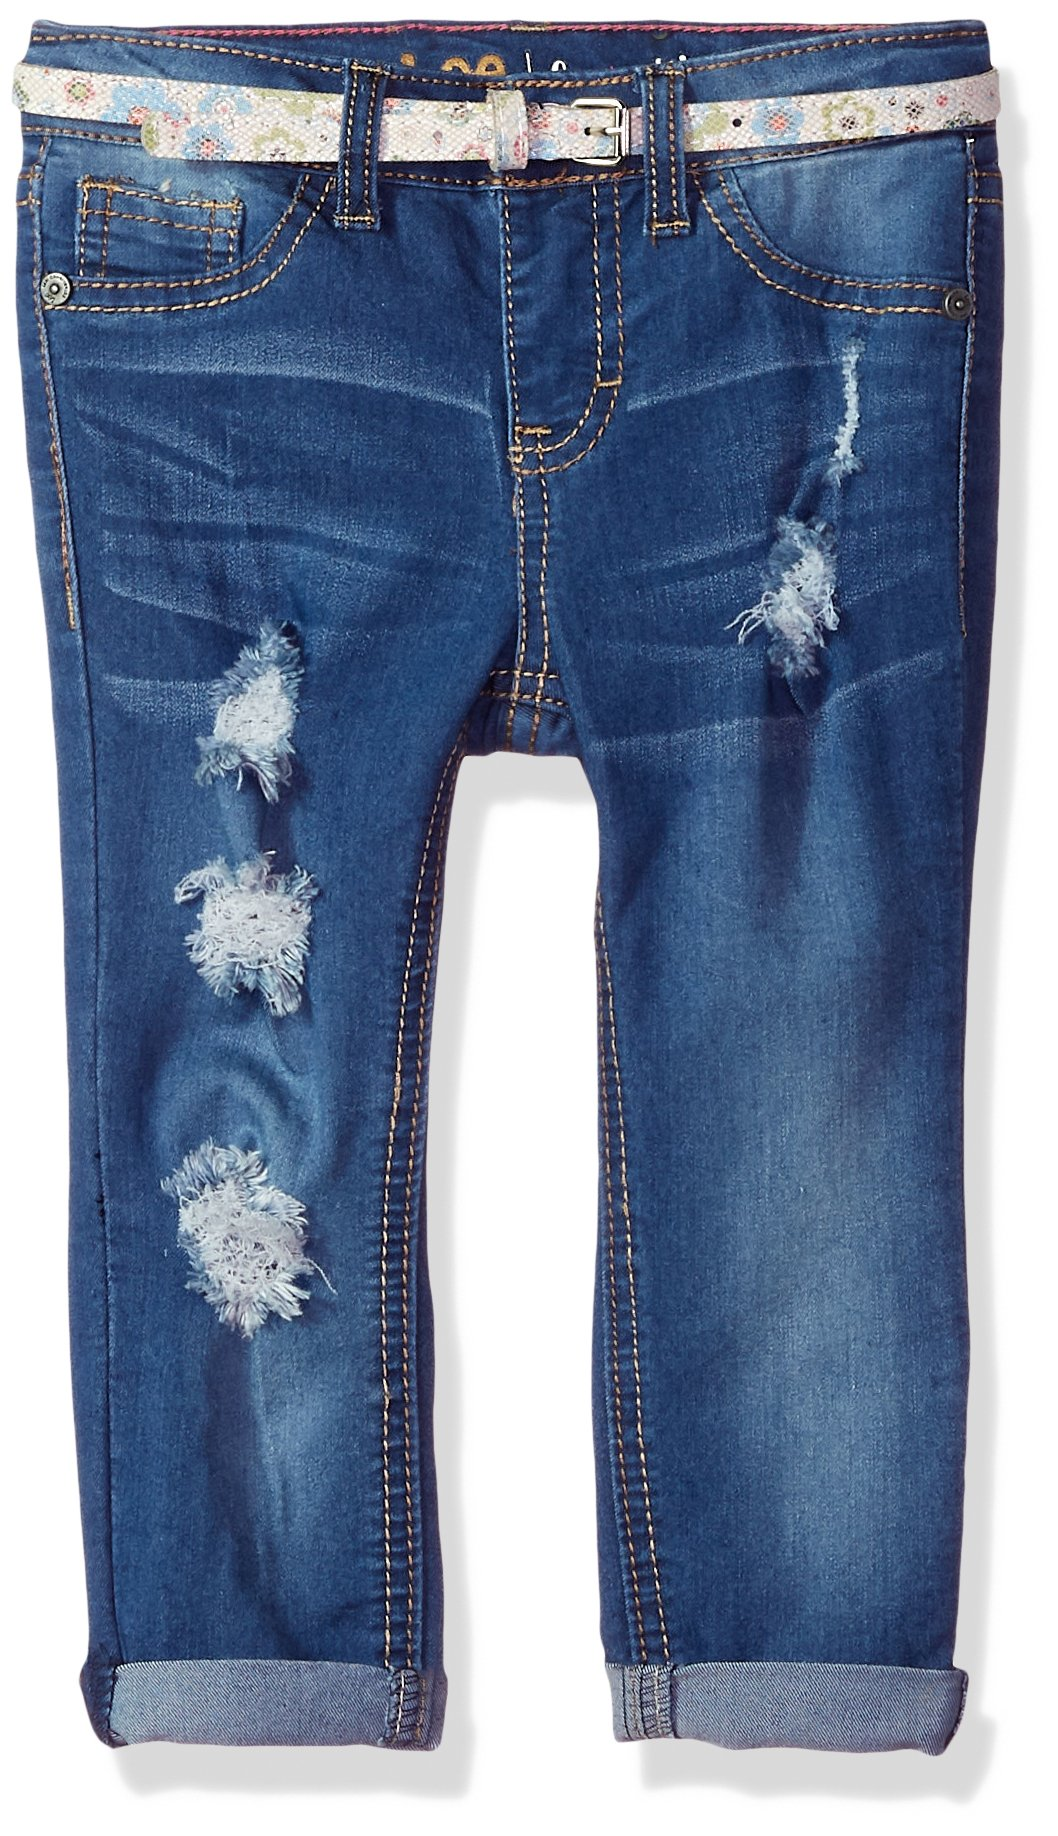 LEE Toddler Girls' Belted Skinny Jean, Shaken Blue, 4T by LEE (Image #1)